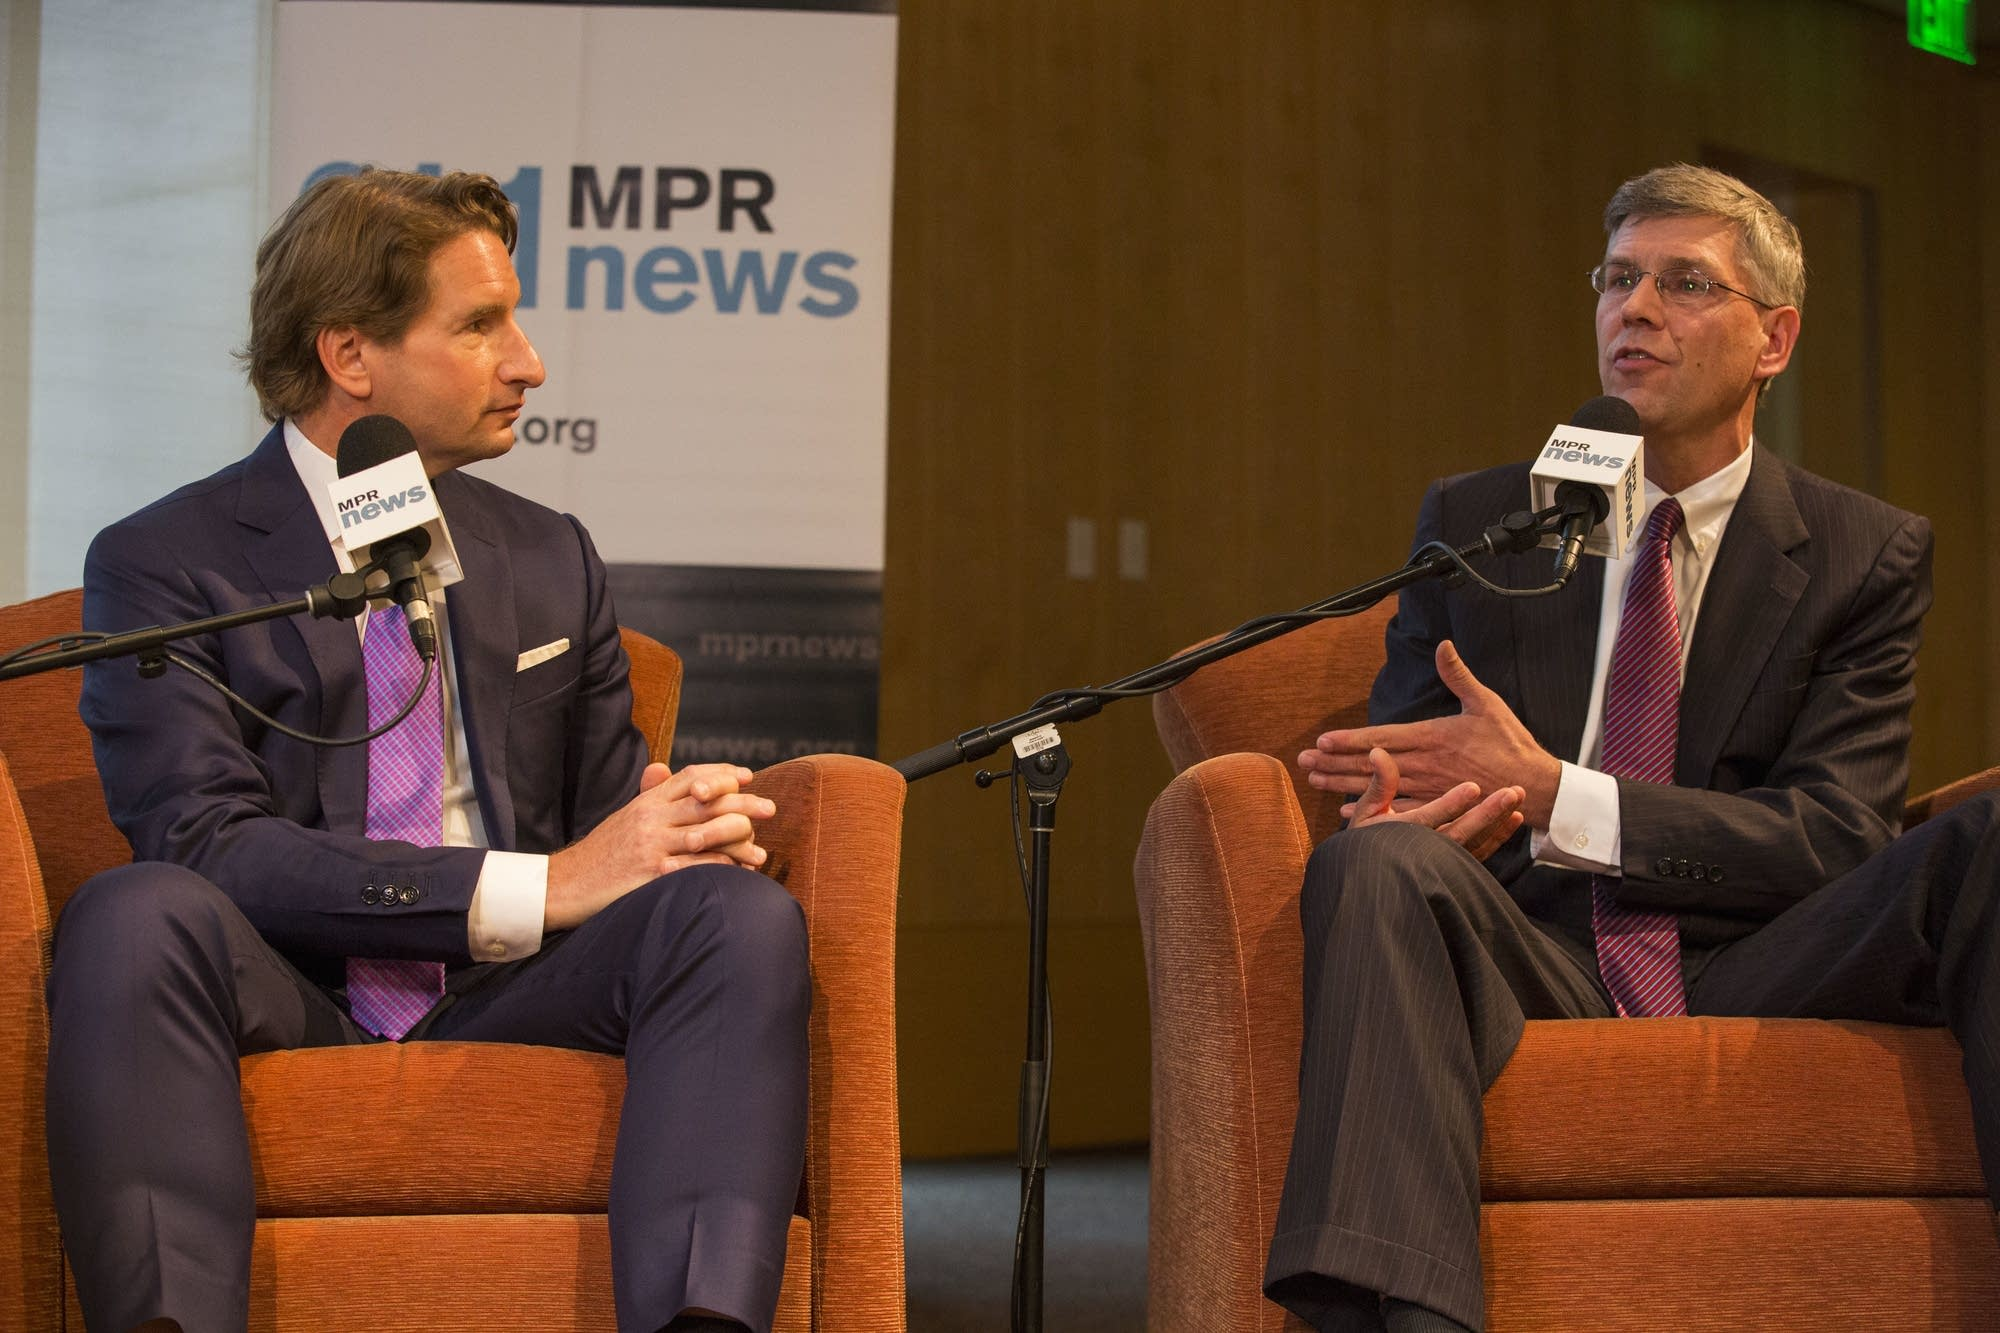 Dean Phillips and Erik Paulsen debate at the UBS Forum at MPR on Oct. 5.